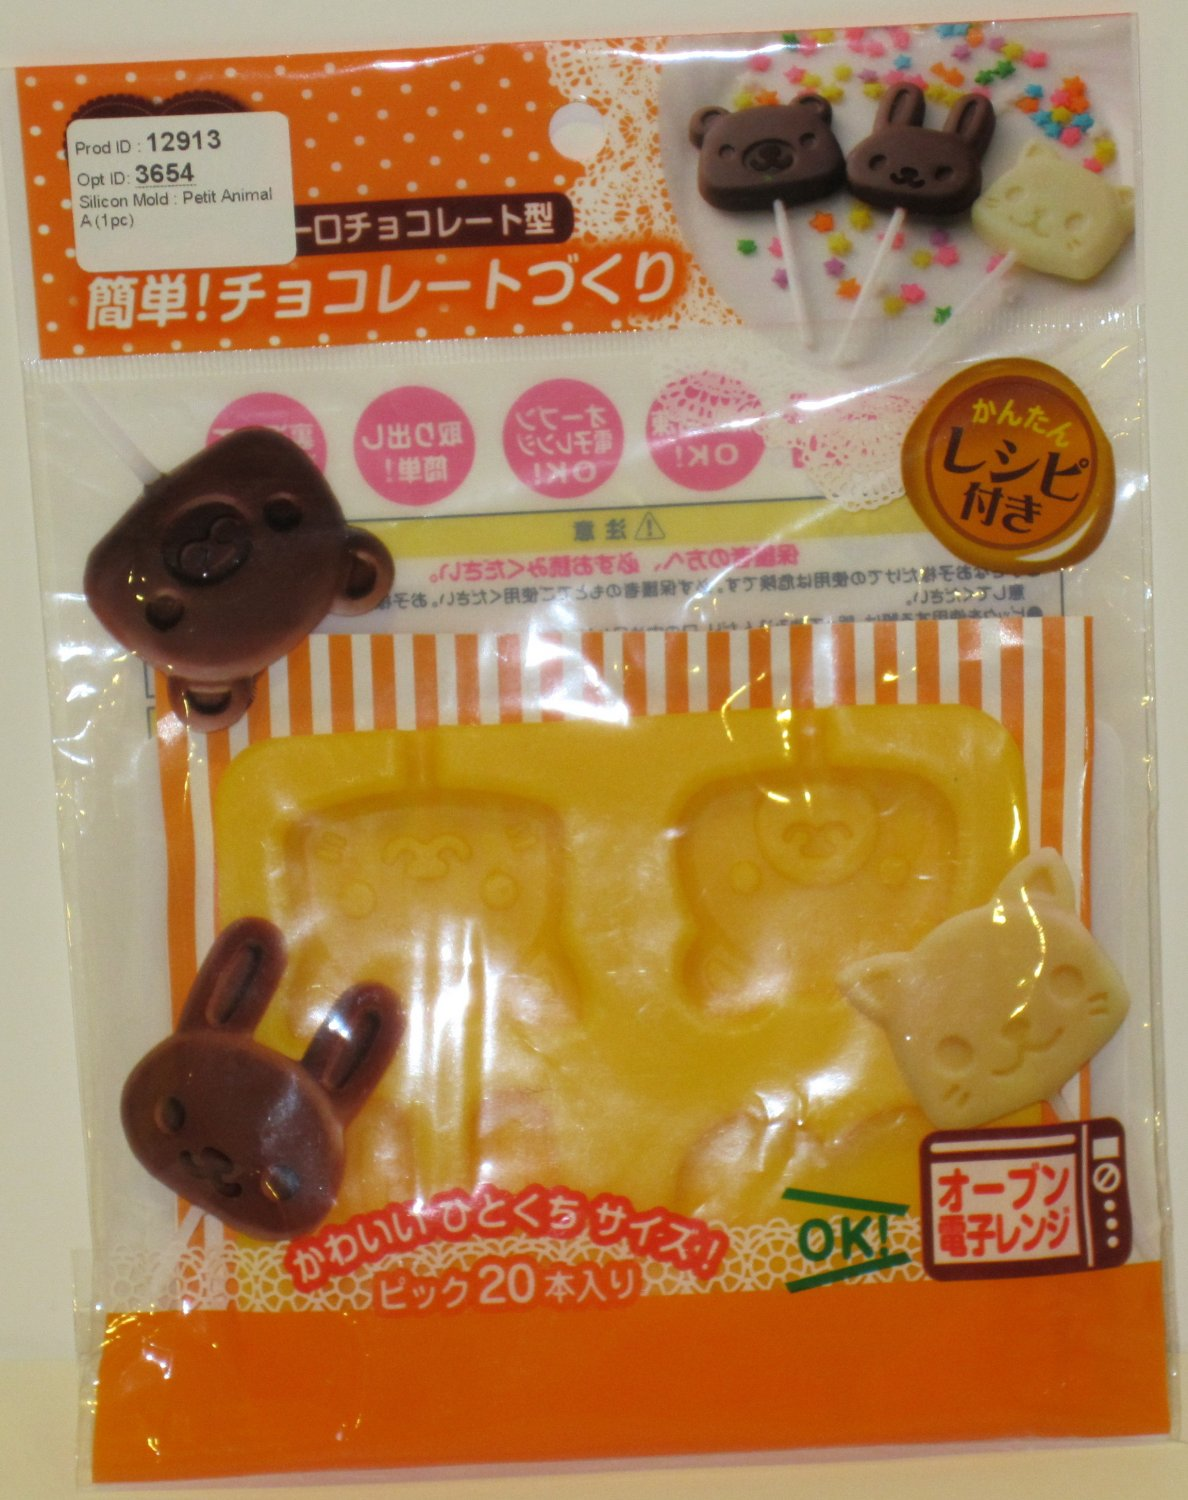 Silicone Mold - for sugarcraft, chocolate, candy etc. - Small Animal A